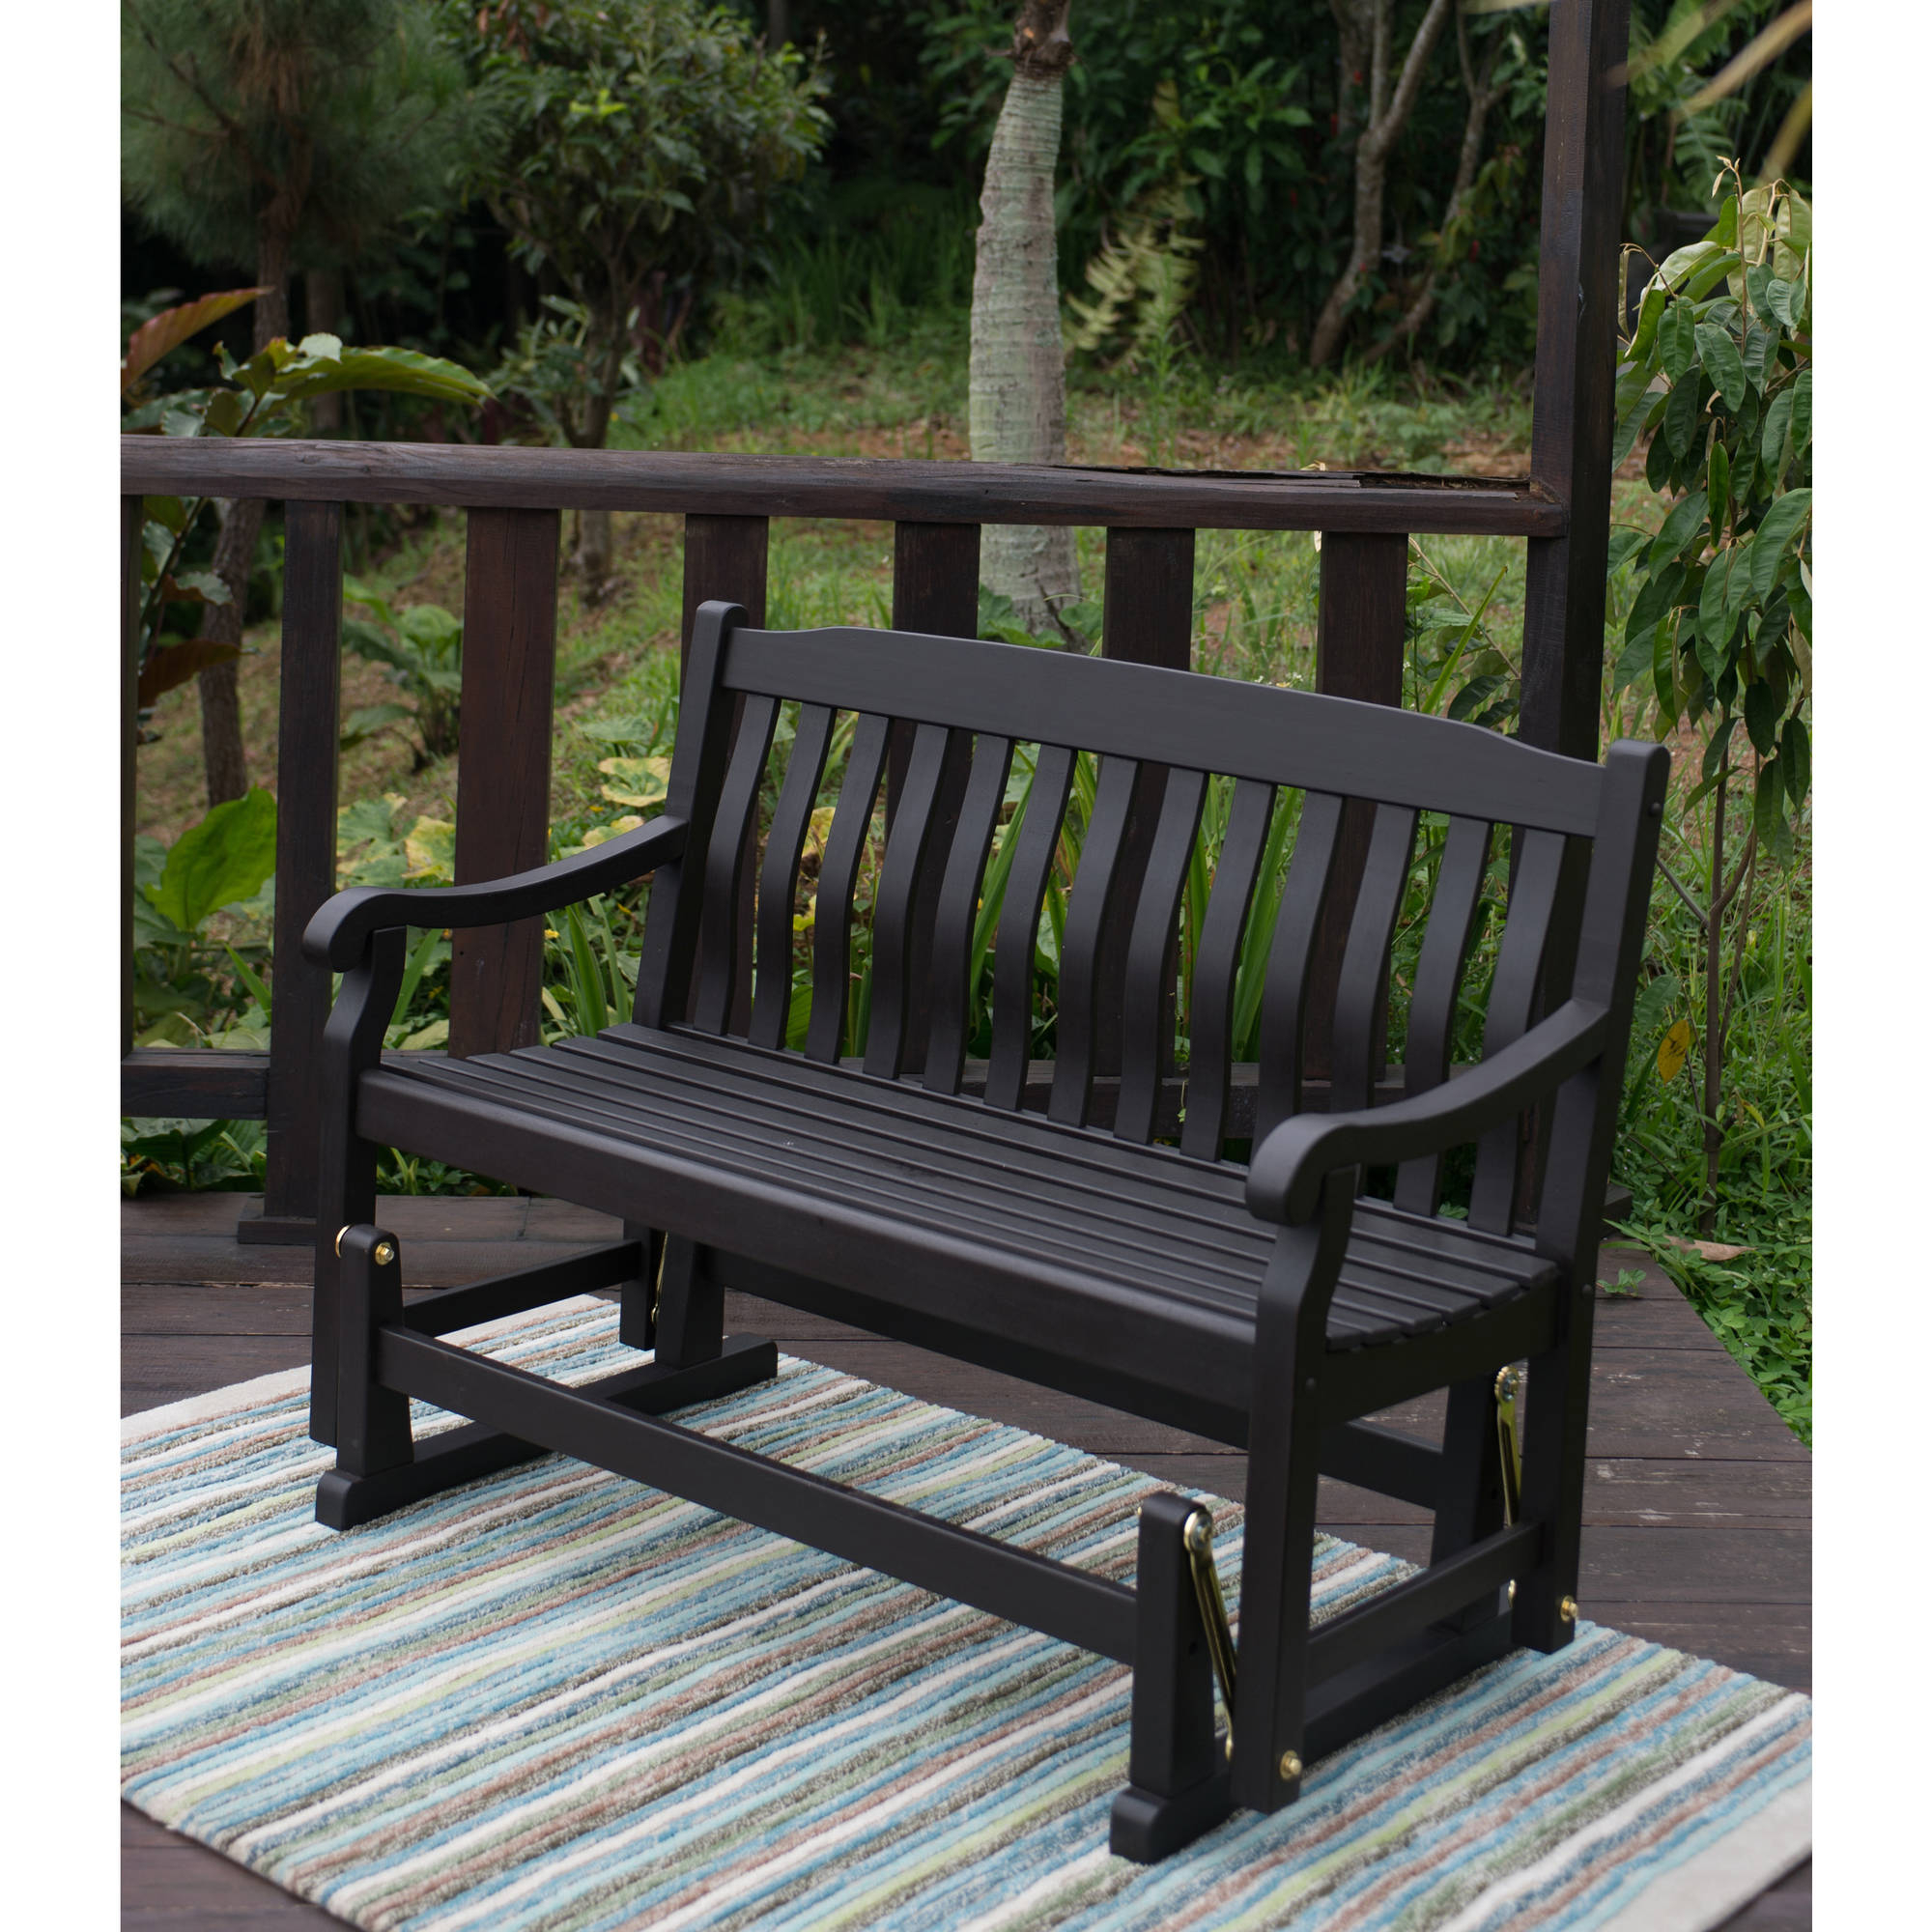 Better Homes & Gardens Delahey Outdoor Glider Bench, Dark Brown – Walmart With Regard To Most Up To Date Outdoor Steel Patio Swing Glider Benches (View 6 of 25)